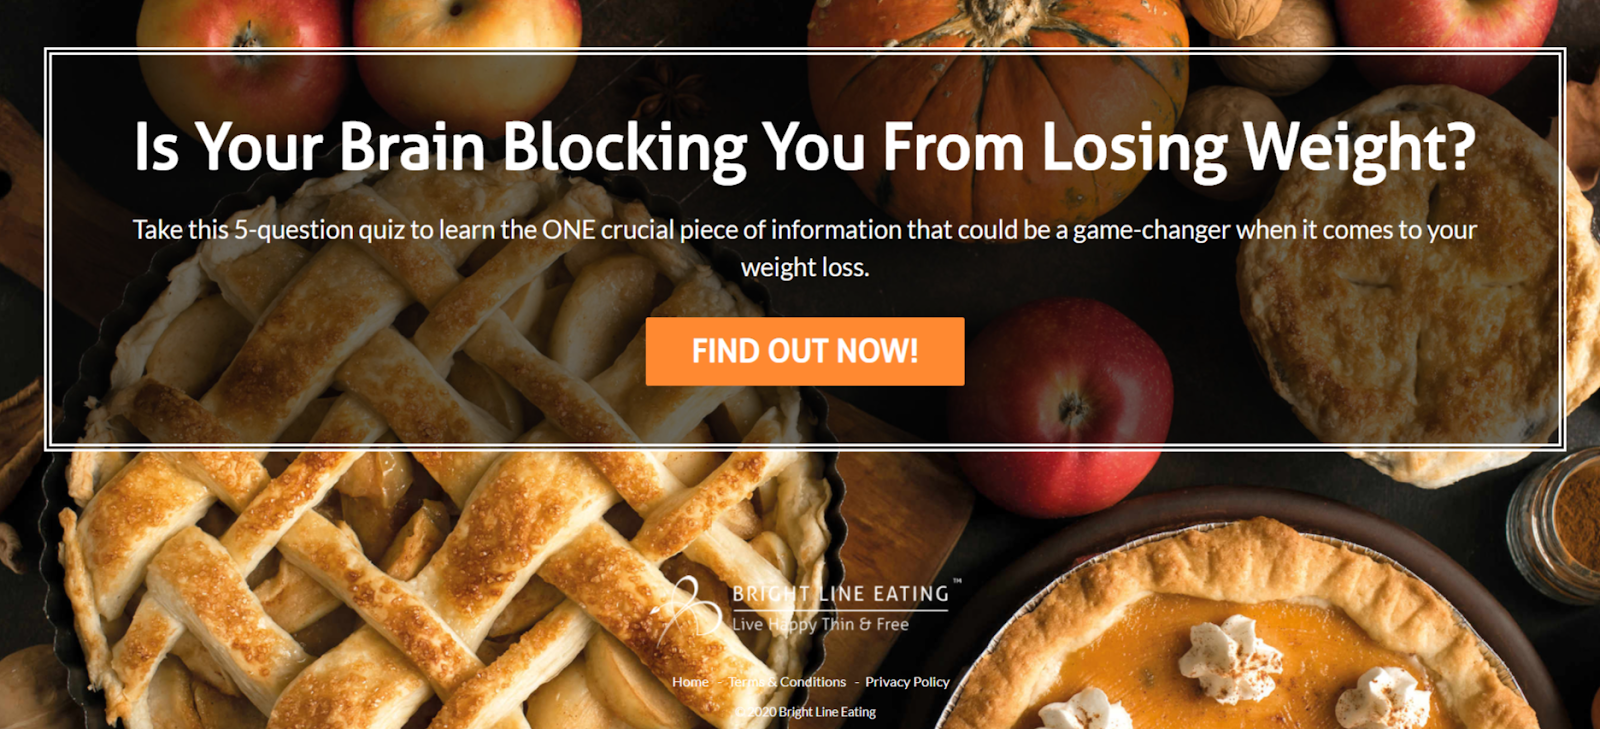 what's blocking you from losing weight quiz